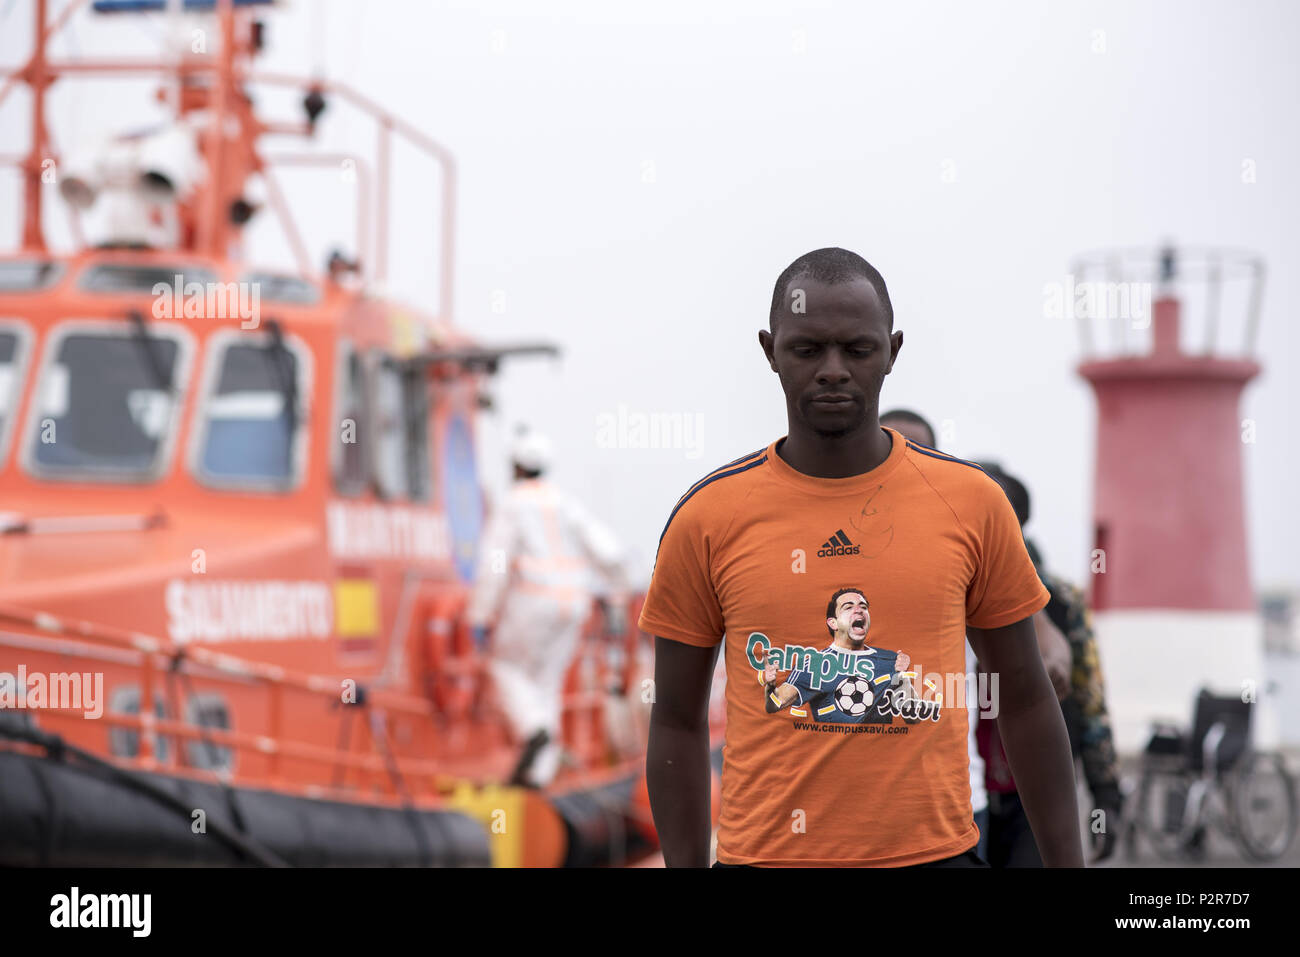 Motril, Granada, Spain. 15th June, 2018. A migrant seen walking on the port after being rescued. 45 men and 8 women have been rescued from a dinghy and brought at Motril port. Today June 15, Spanish Maritime Rescue Safety have rescued 211 people in the Alboran Sea from five dinghies and also 471 people from 47 dinghies have been rescued in El Estrecho, 4 people have died. Credit: Carlos Gil/SOPA Images/ZUMA Wire/Alamy Live News - Stock Image